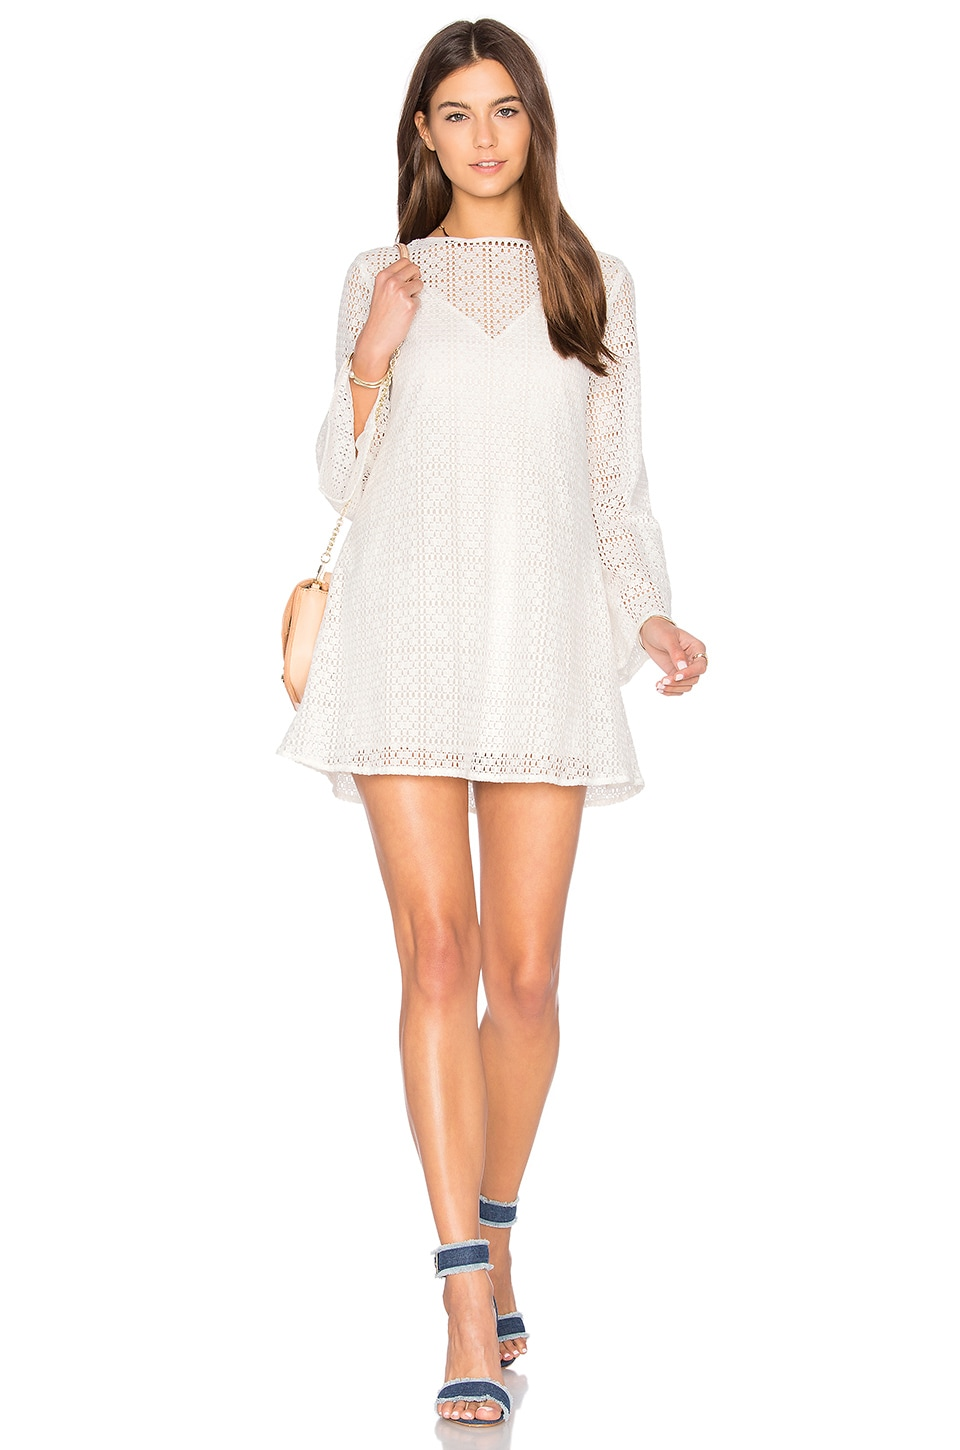 The Fifth Label Tune In Dress in White